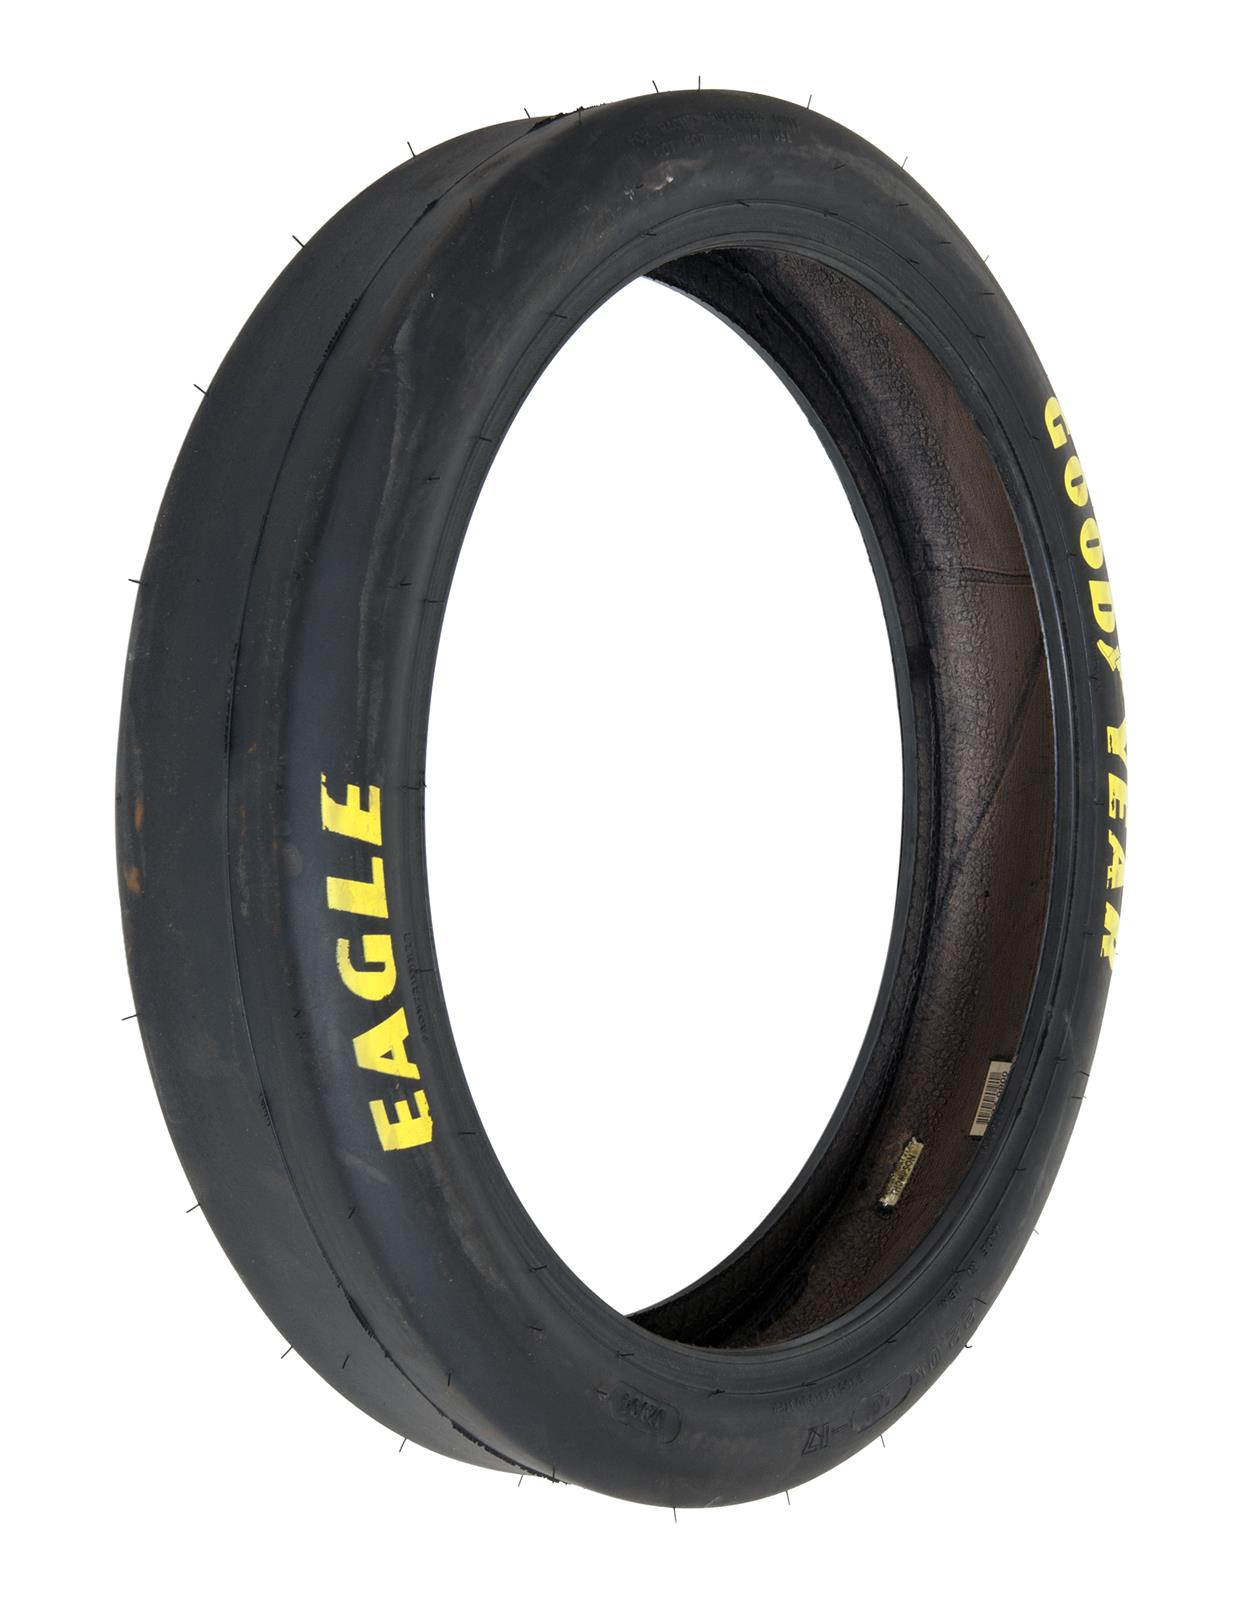 Goodyear eagle dragway special front runner tire 22x400 for Goodyear eagle yellow letter street tires